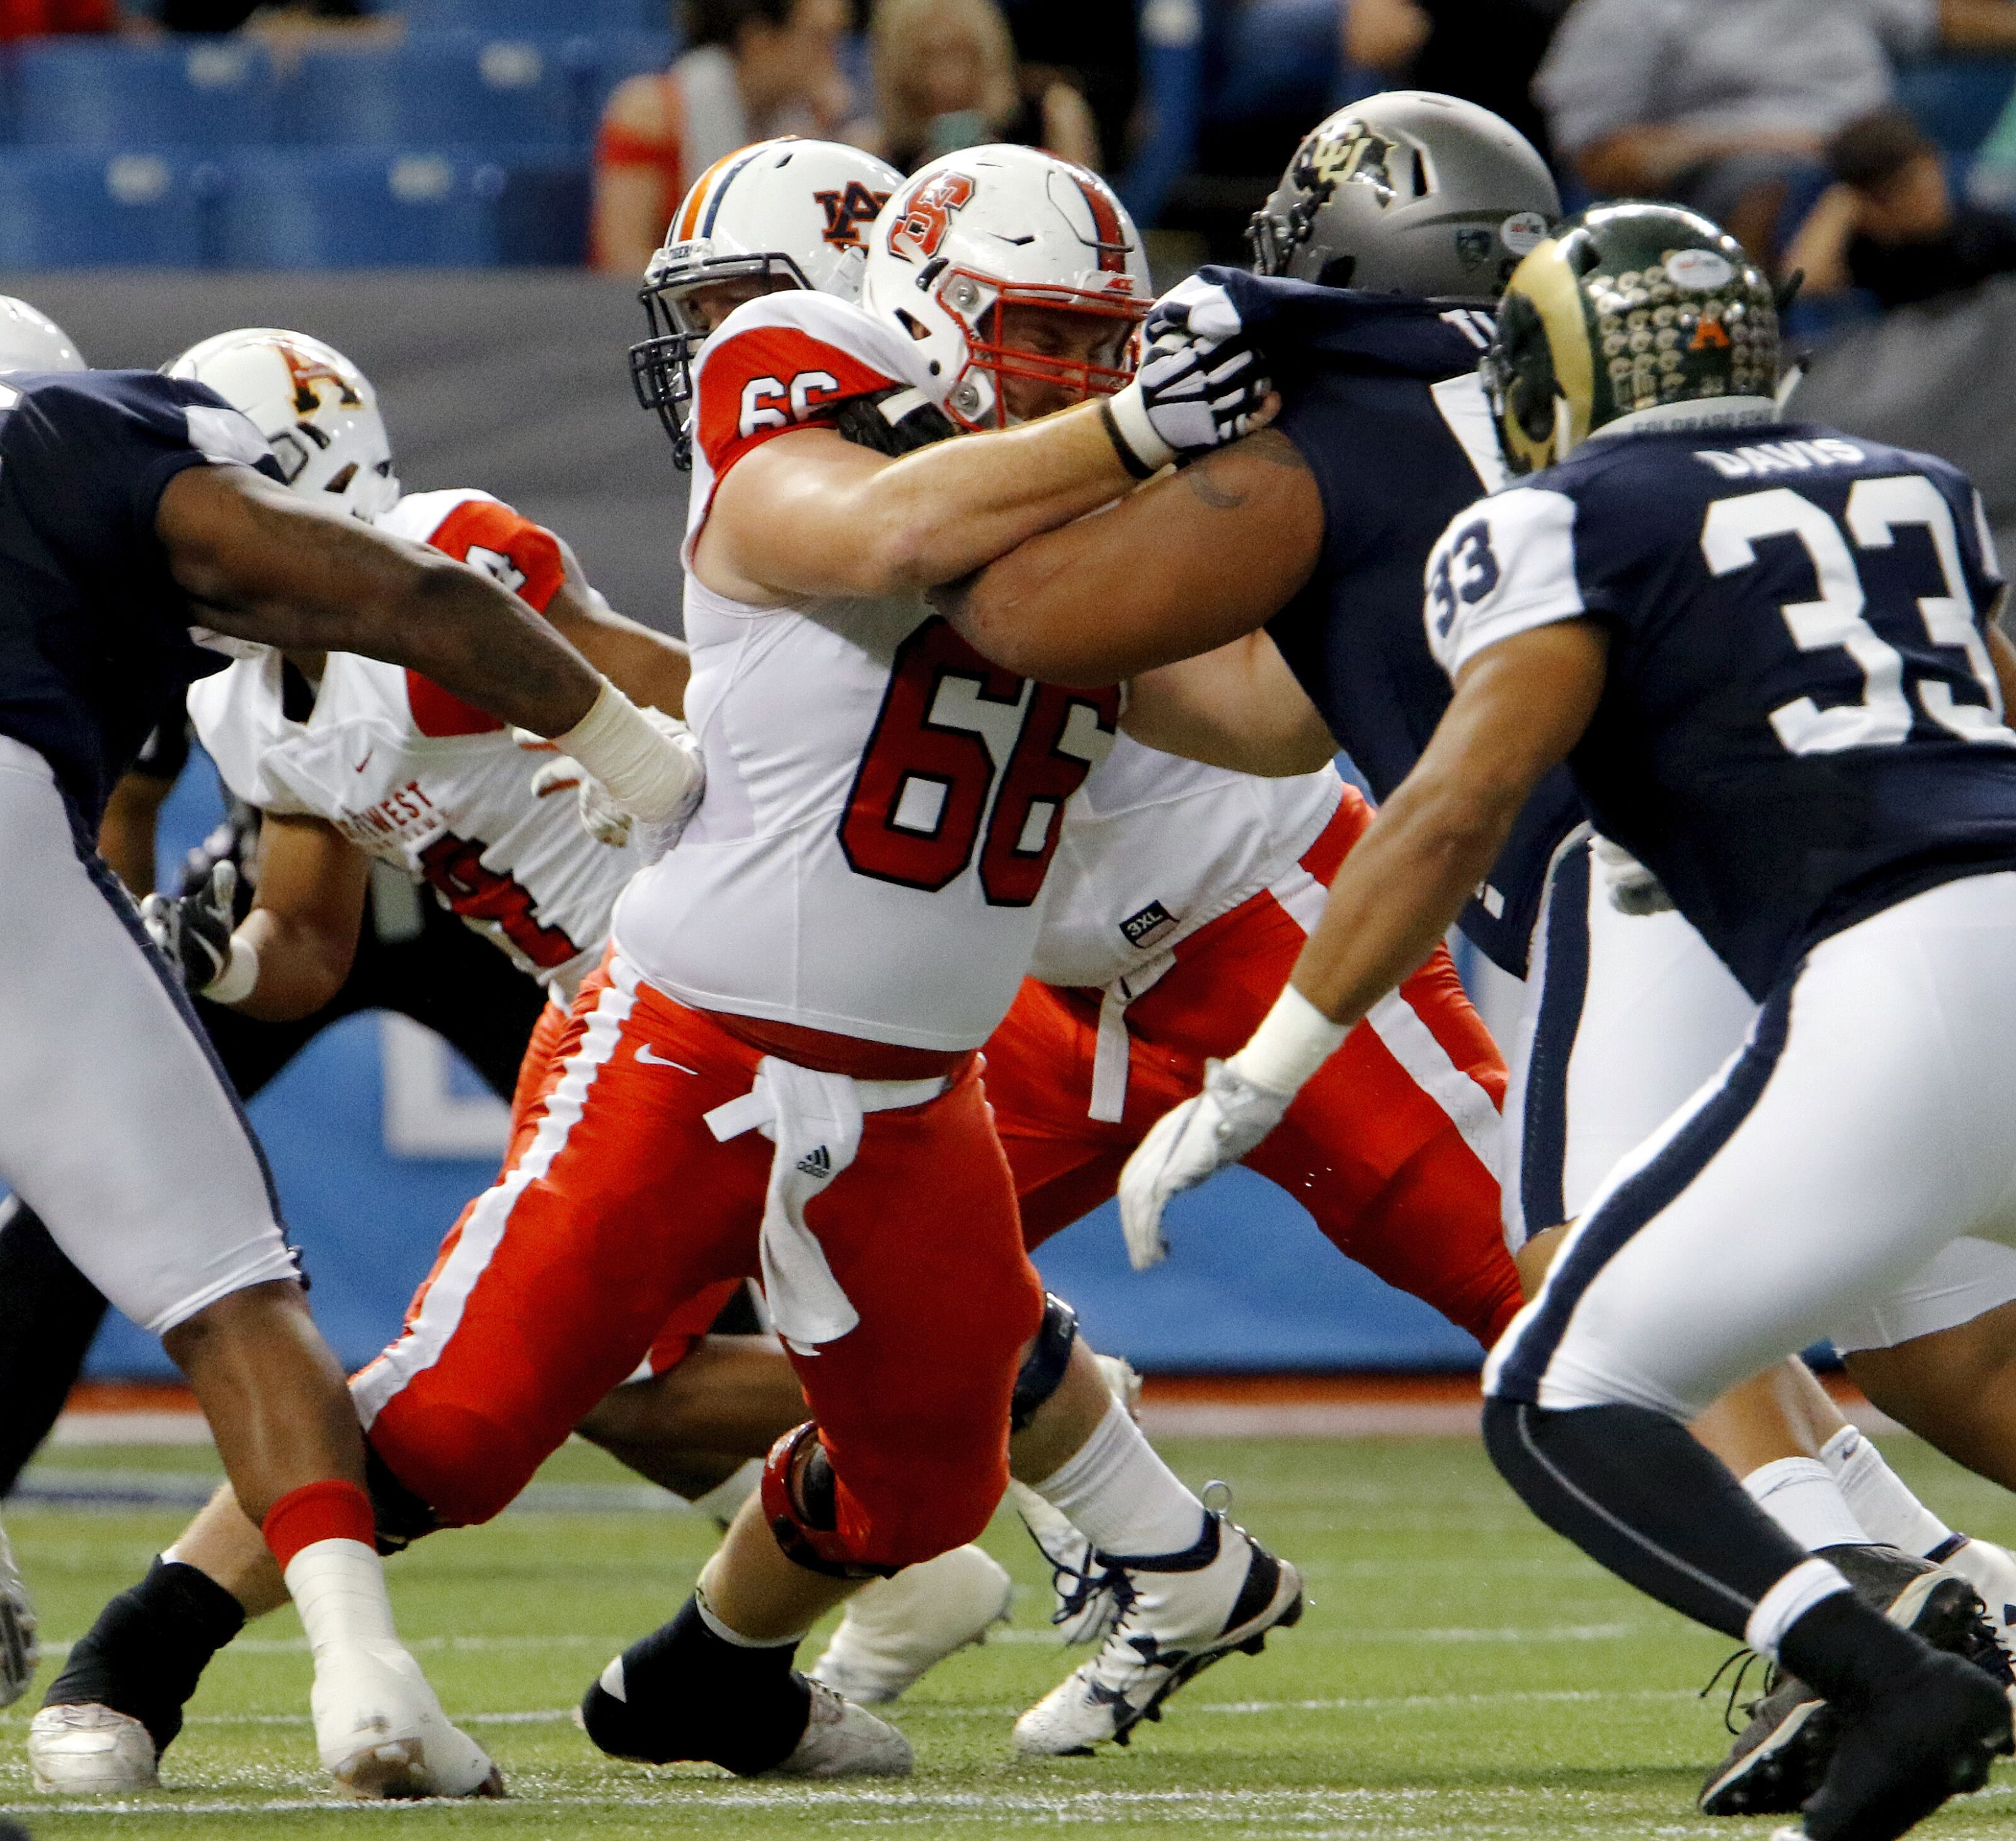 LA Rams Mock Draft: late round OL prospects abound in Shrine game